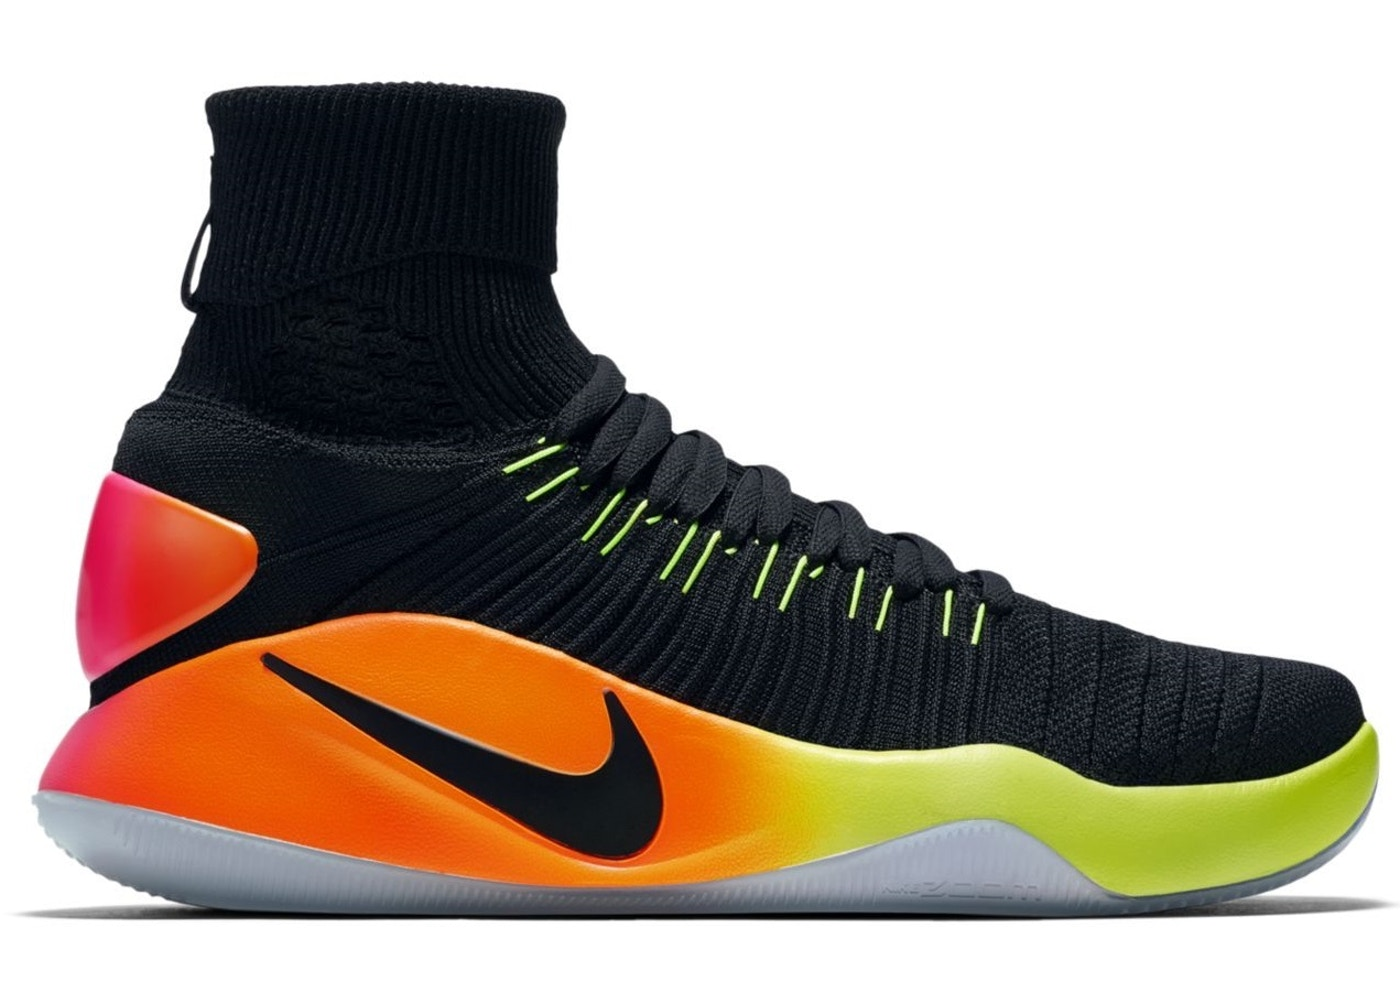 online retailer e1095 689bf Buy Nike Basketball Hyperdunk Shoes & Deadstock Sneakers